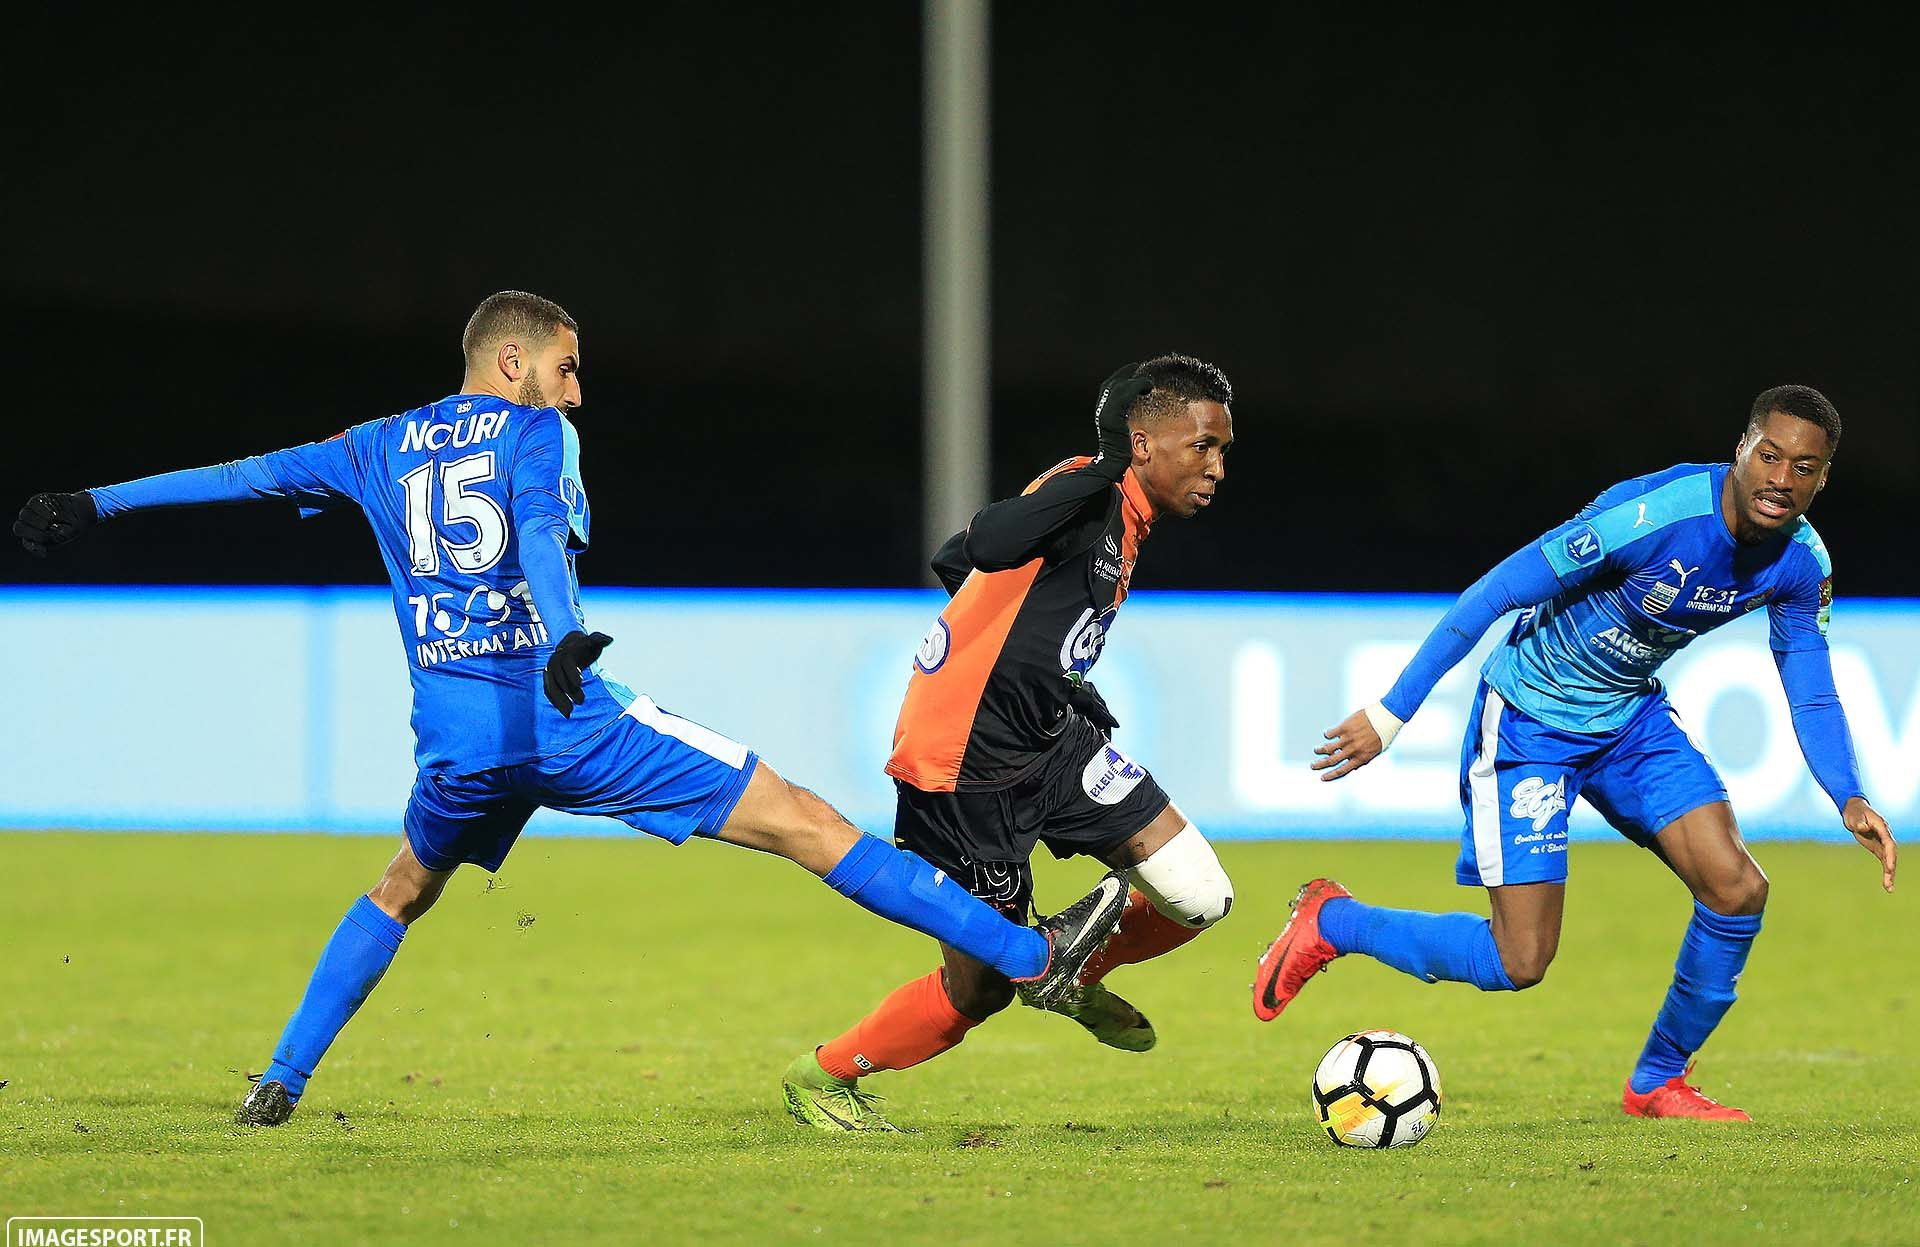 34-stade-lavallois-imagesport-neyou